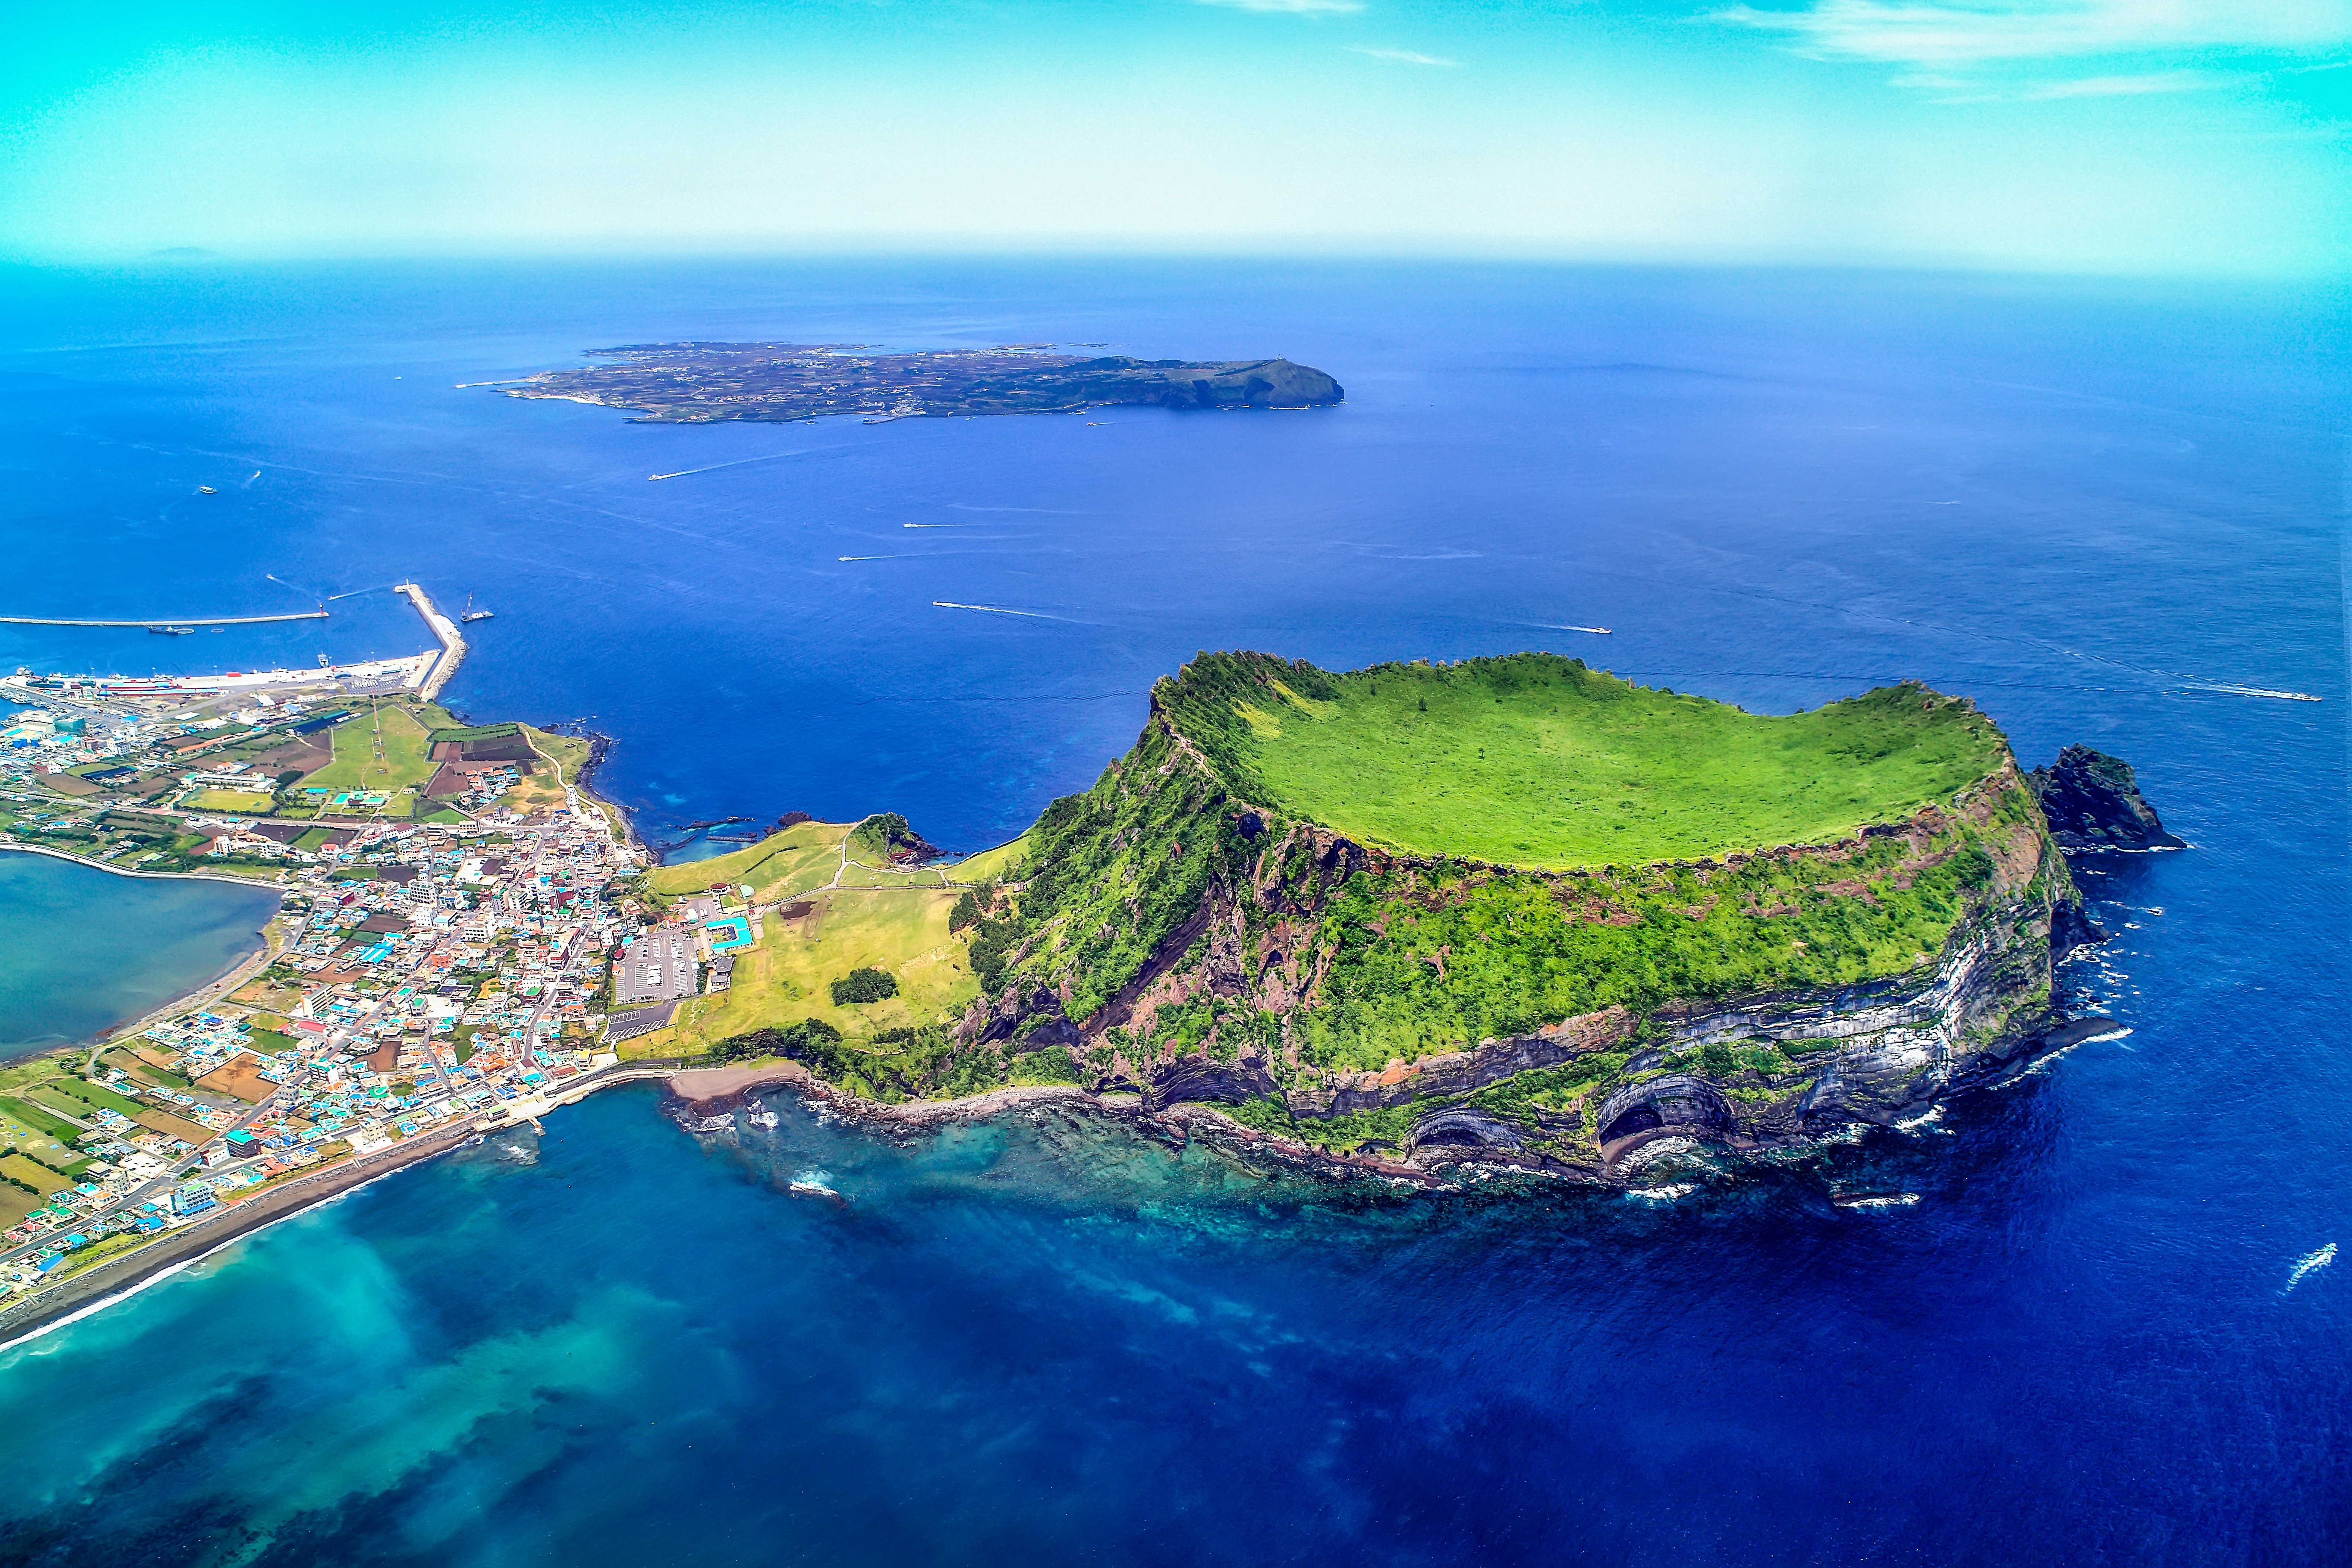 Aerial view of Seongsanilchulbong Cliff (Korea Natural Monument 420, UNESCO World Heritage Site) and Udo Island (Famous travel destination) in Jeju Island